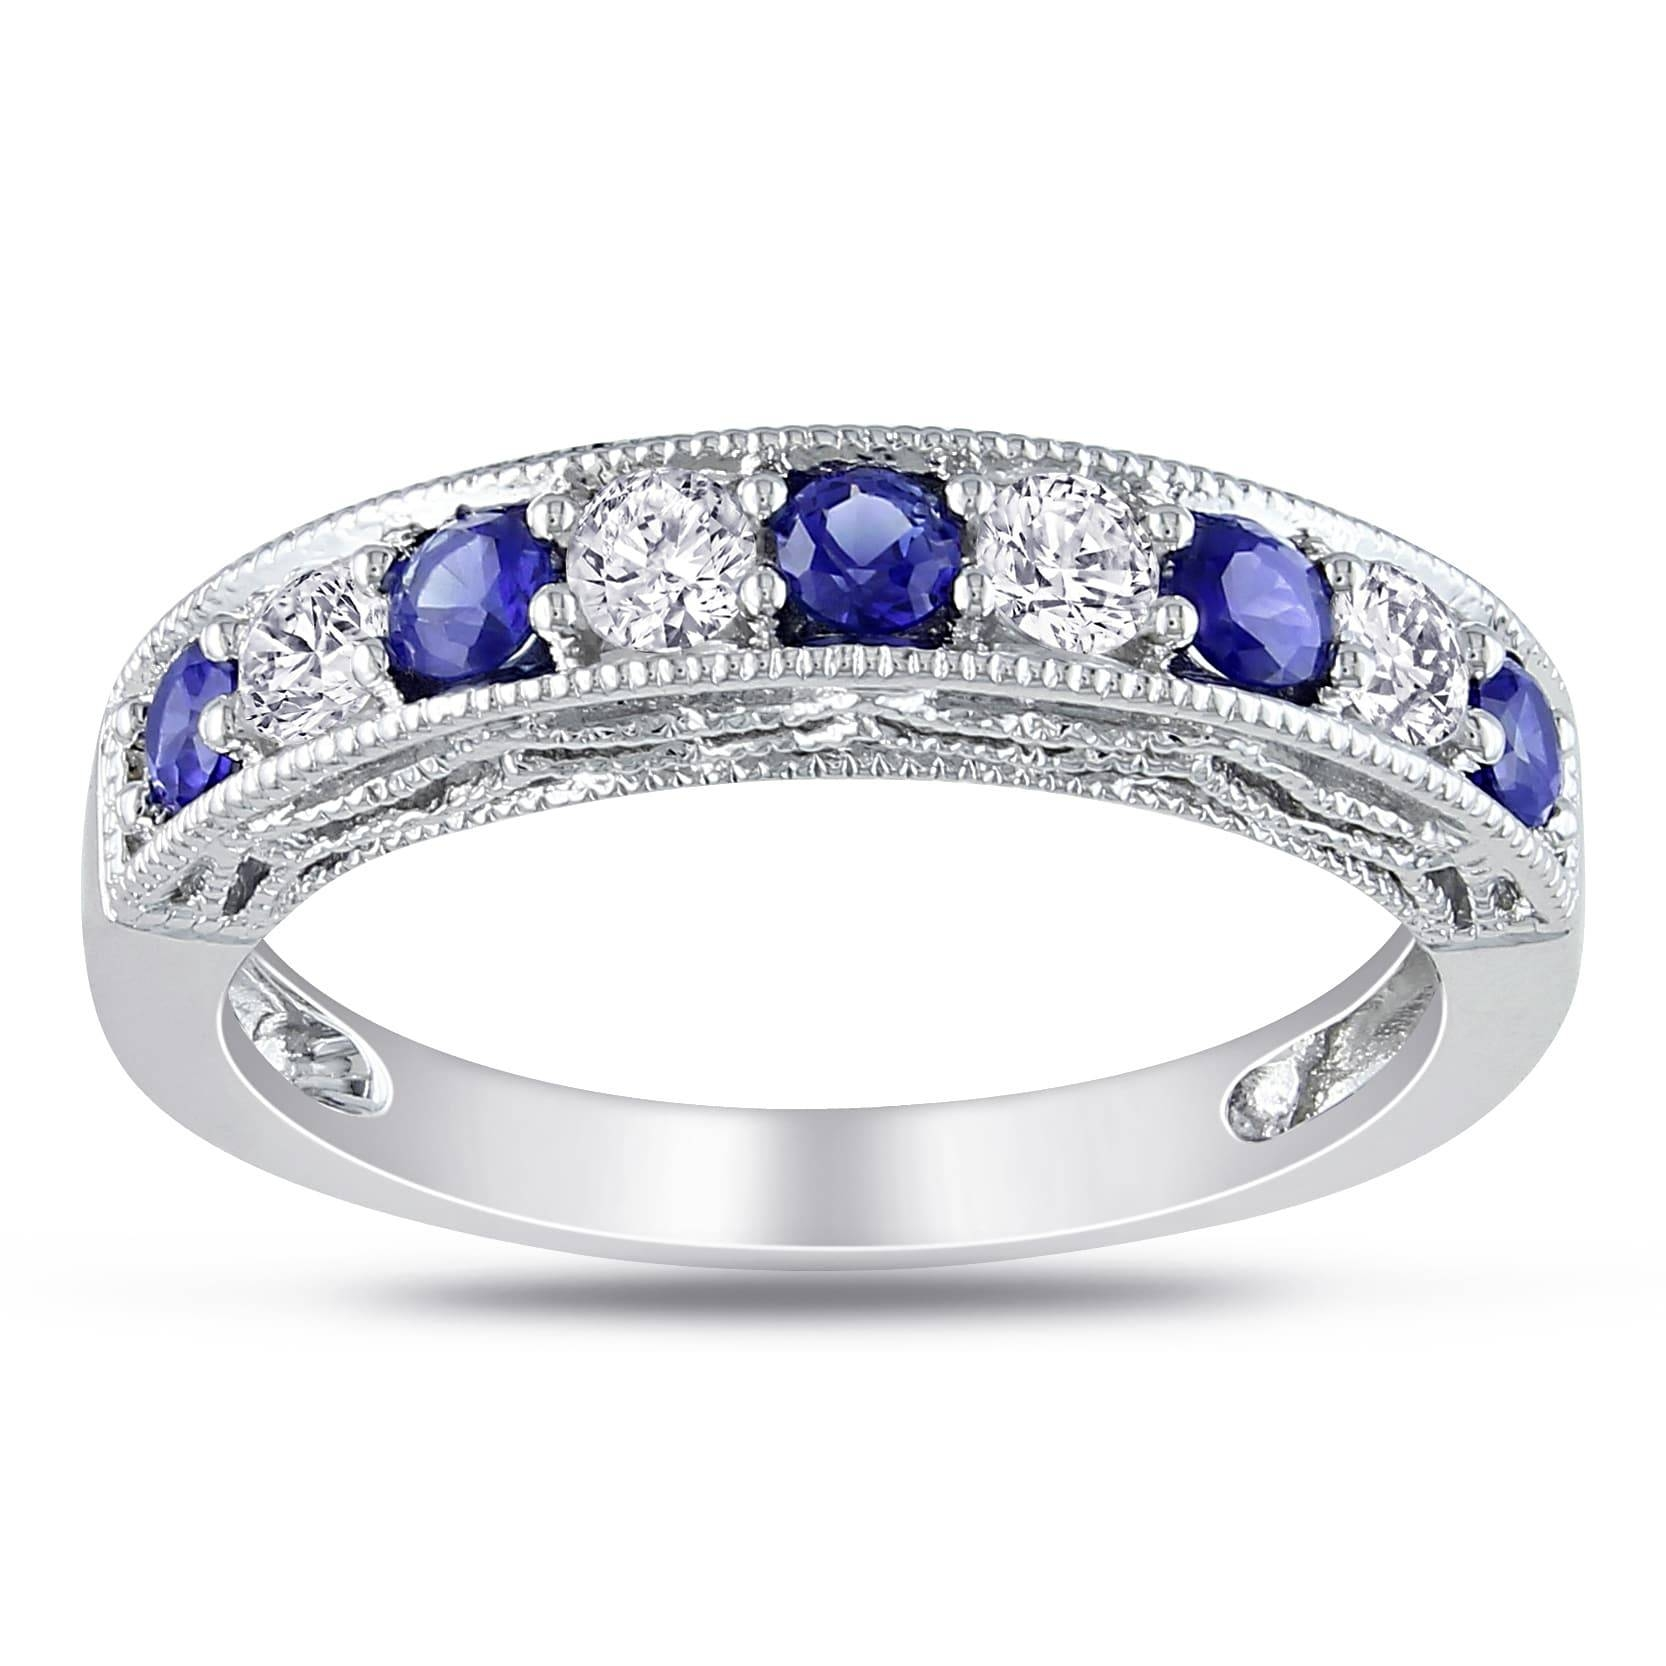 Miadora Sterling Silver Created Blue And White Sapphire Stackable Regarding Current Silver Wedding Anniversary Rings (Gallery 24 of 25)